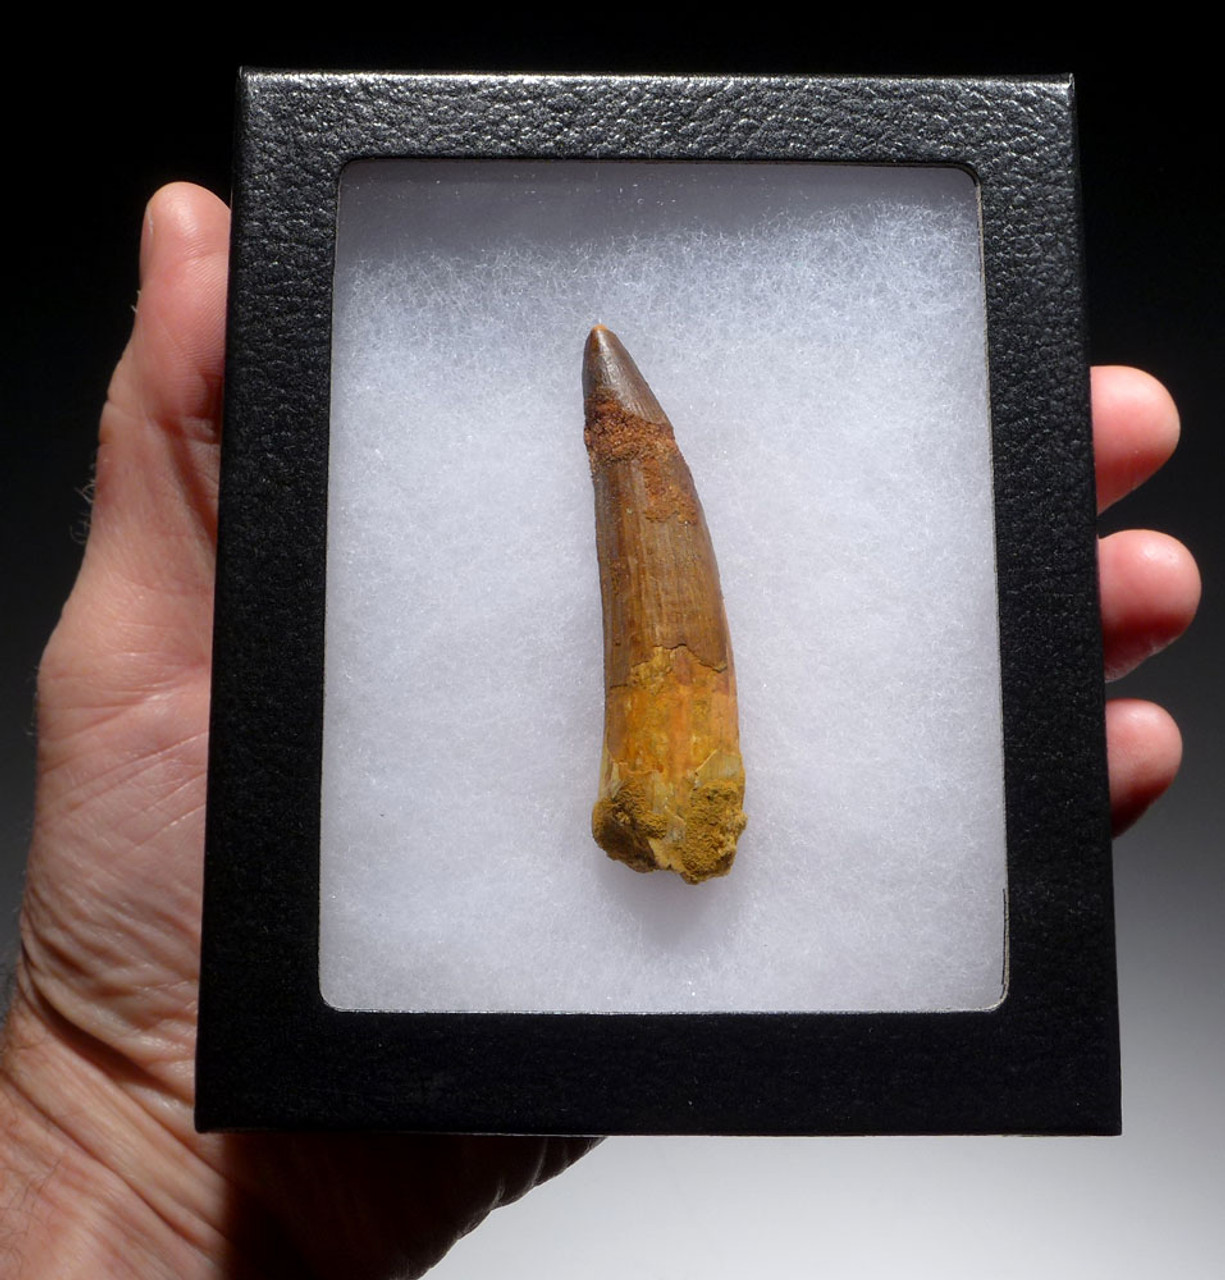 3 INCH INEXPENSIVE SPINOSAURUS DINOSAUR FOSSIL TOOTH *DT5-380